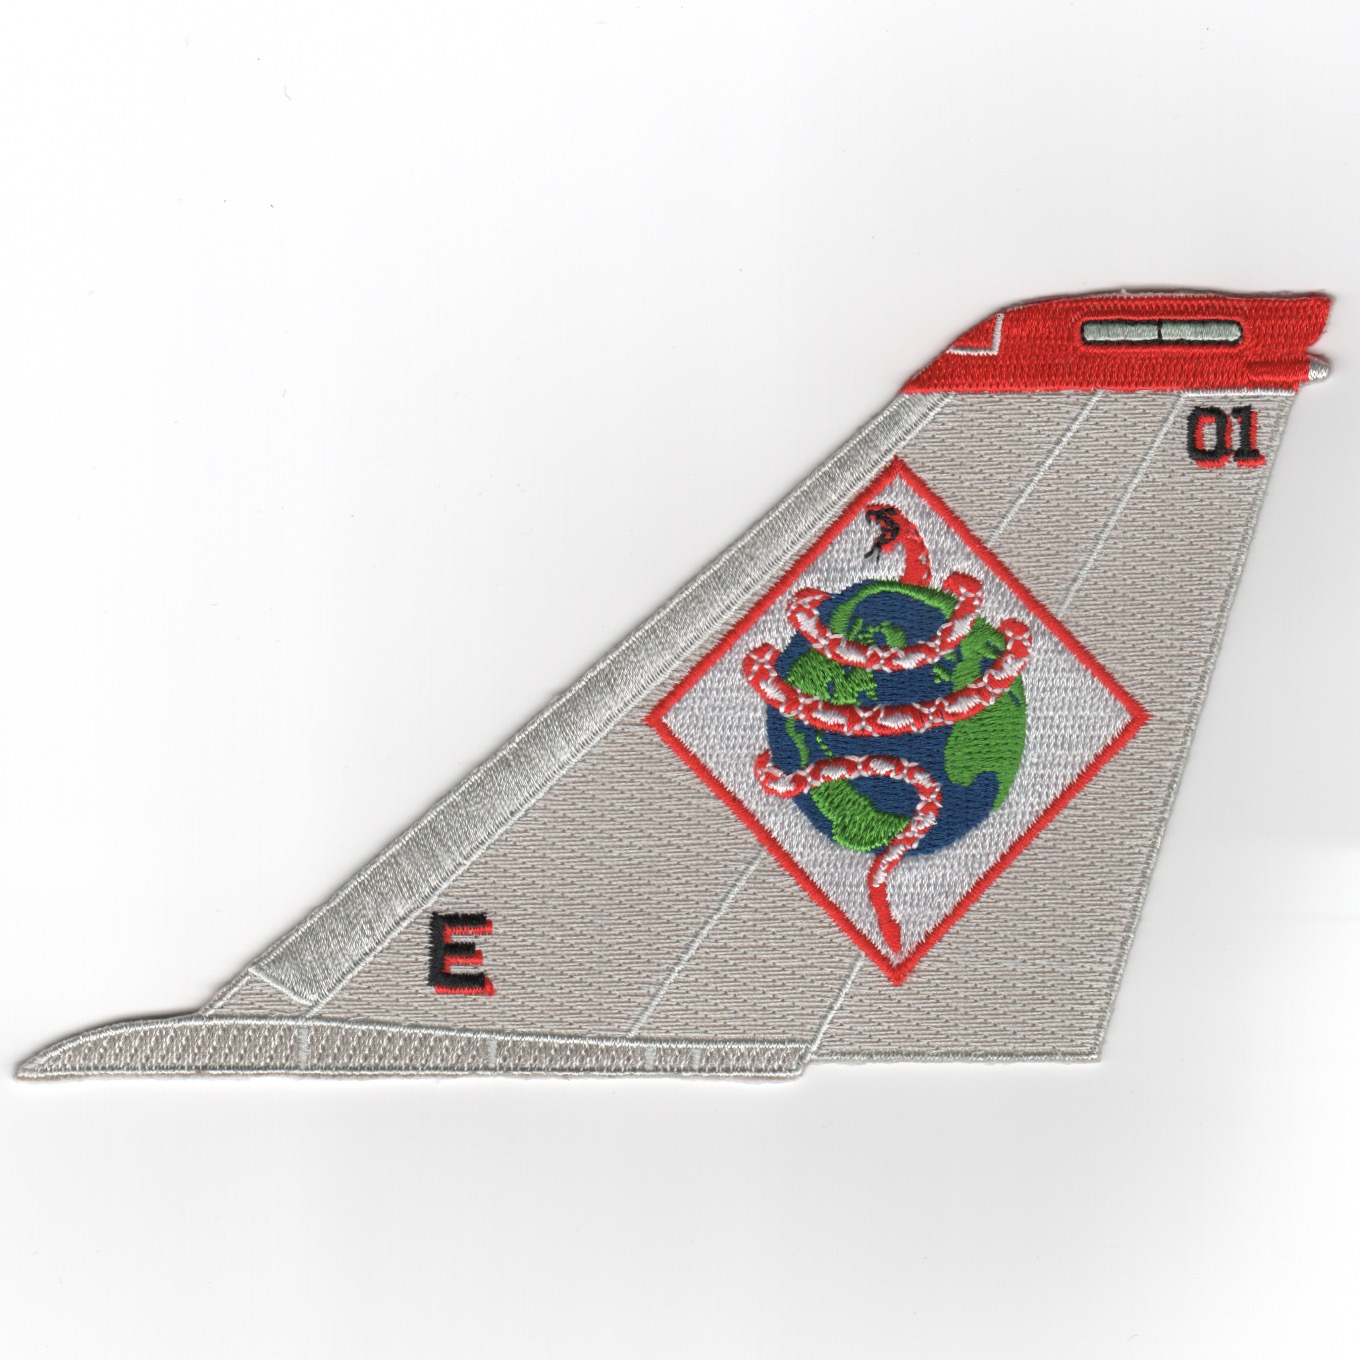 VF-102 F-14 Tailfin (Gray/Diam/No Text)